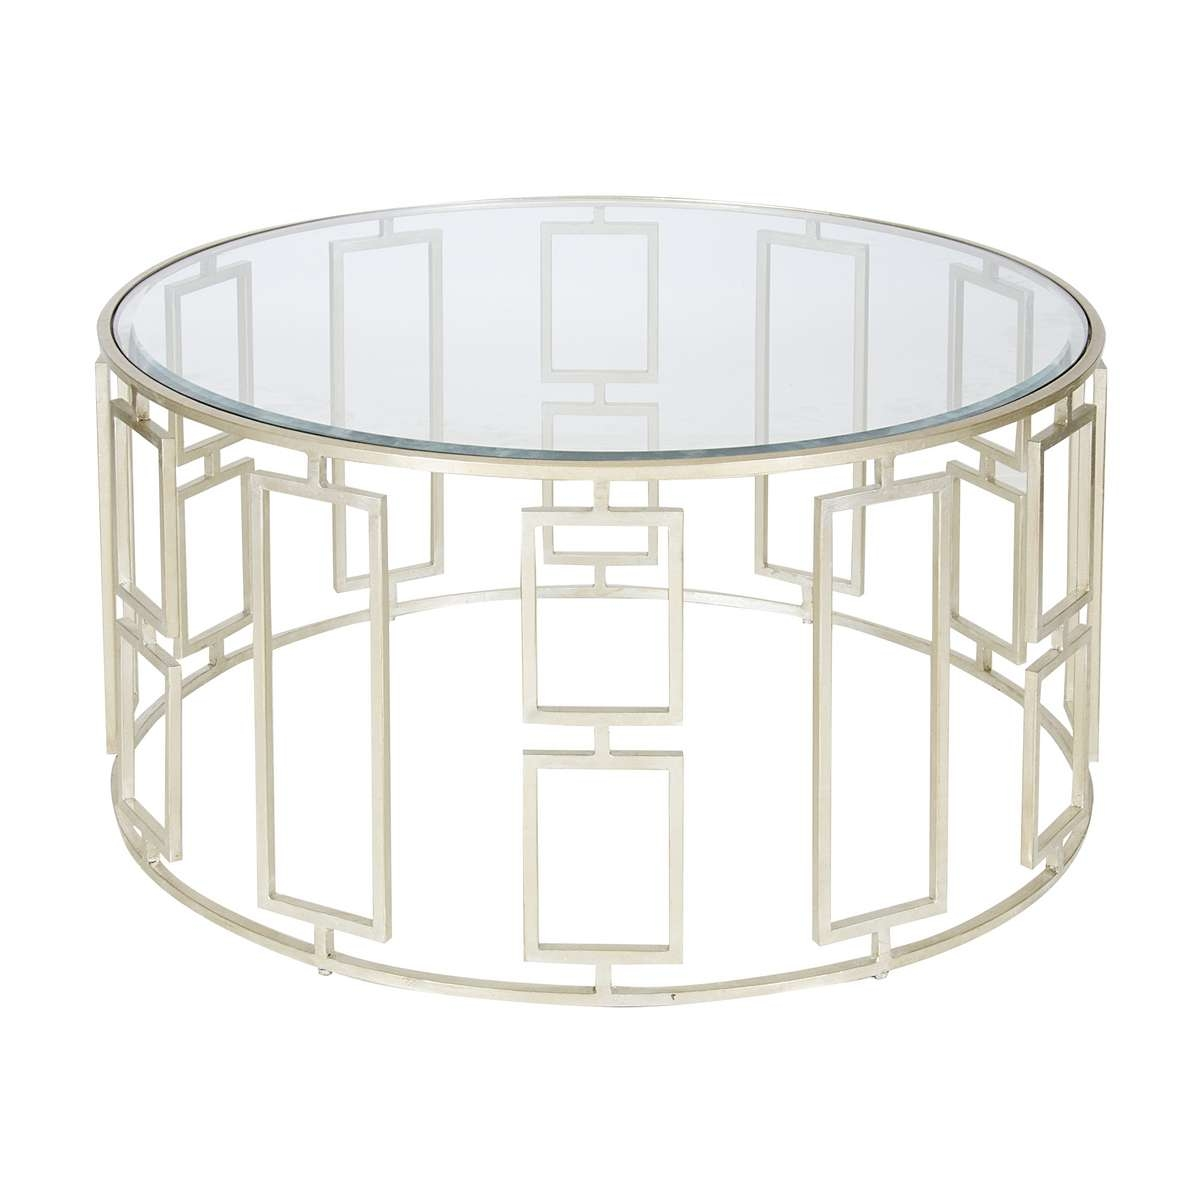 Matthew Izzo Throughout Famous Glass And Silver Coffee Tables (View 7 of 20)